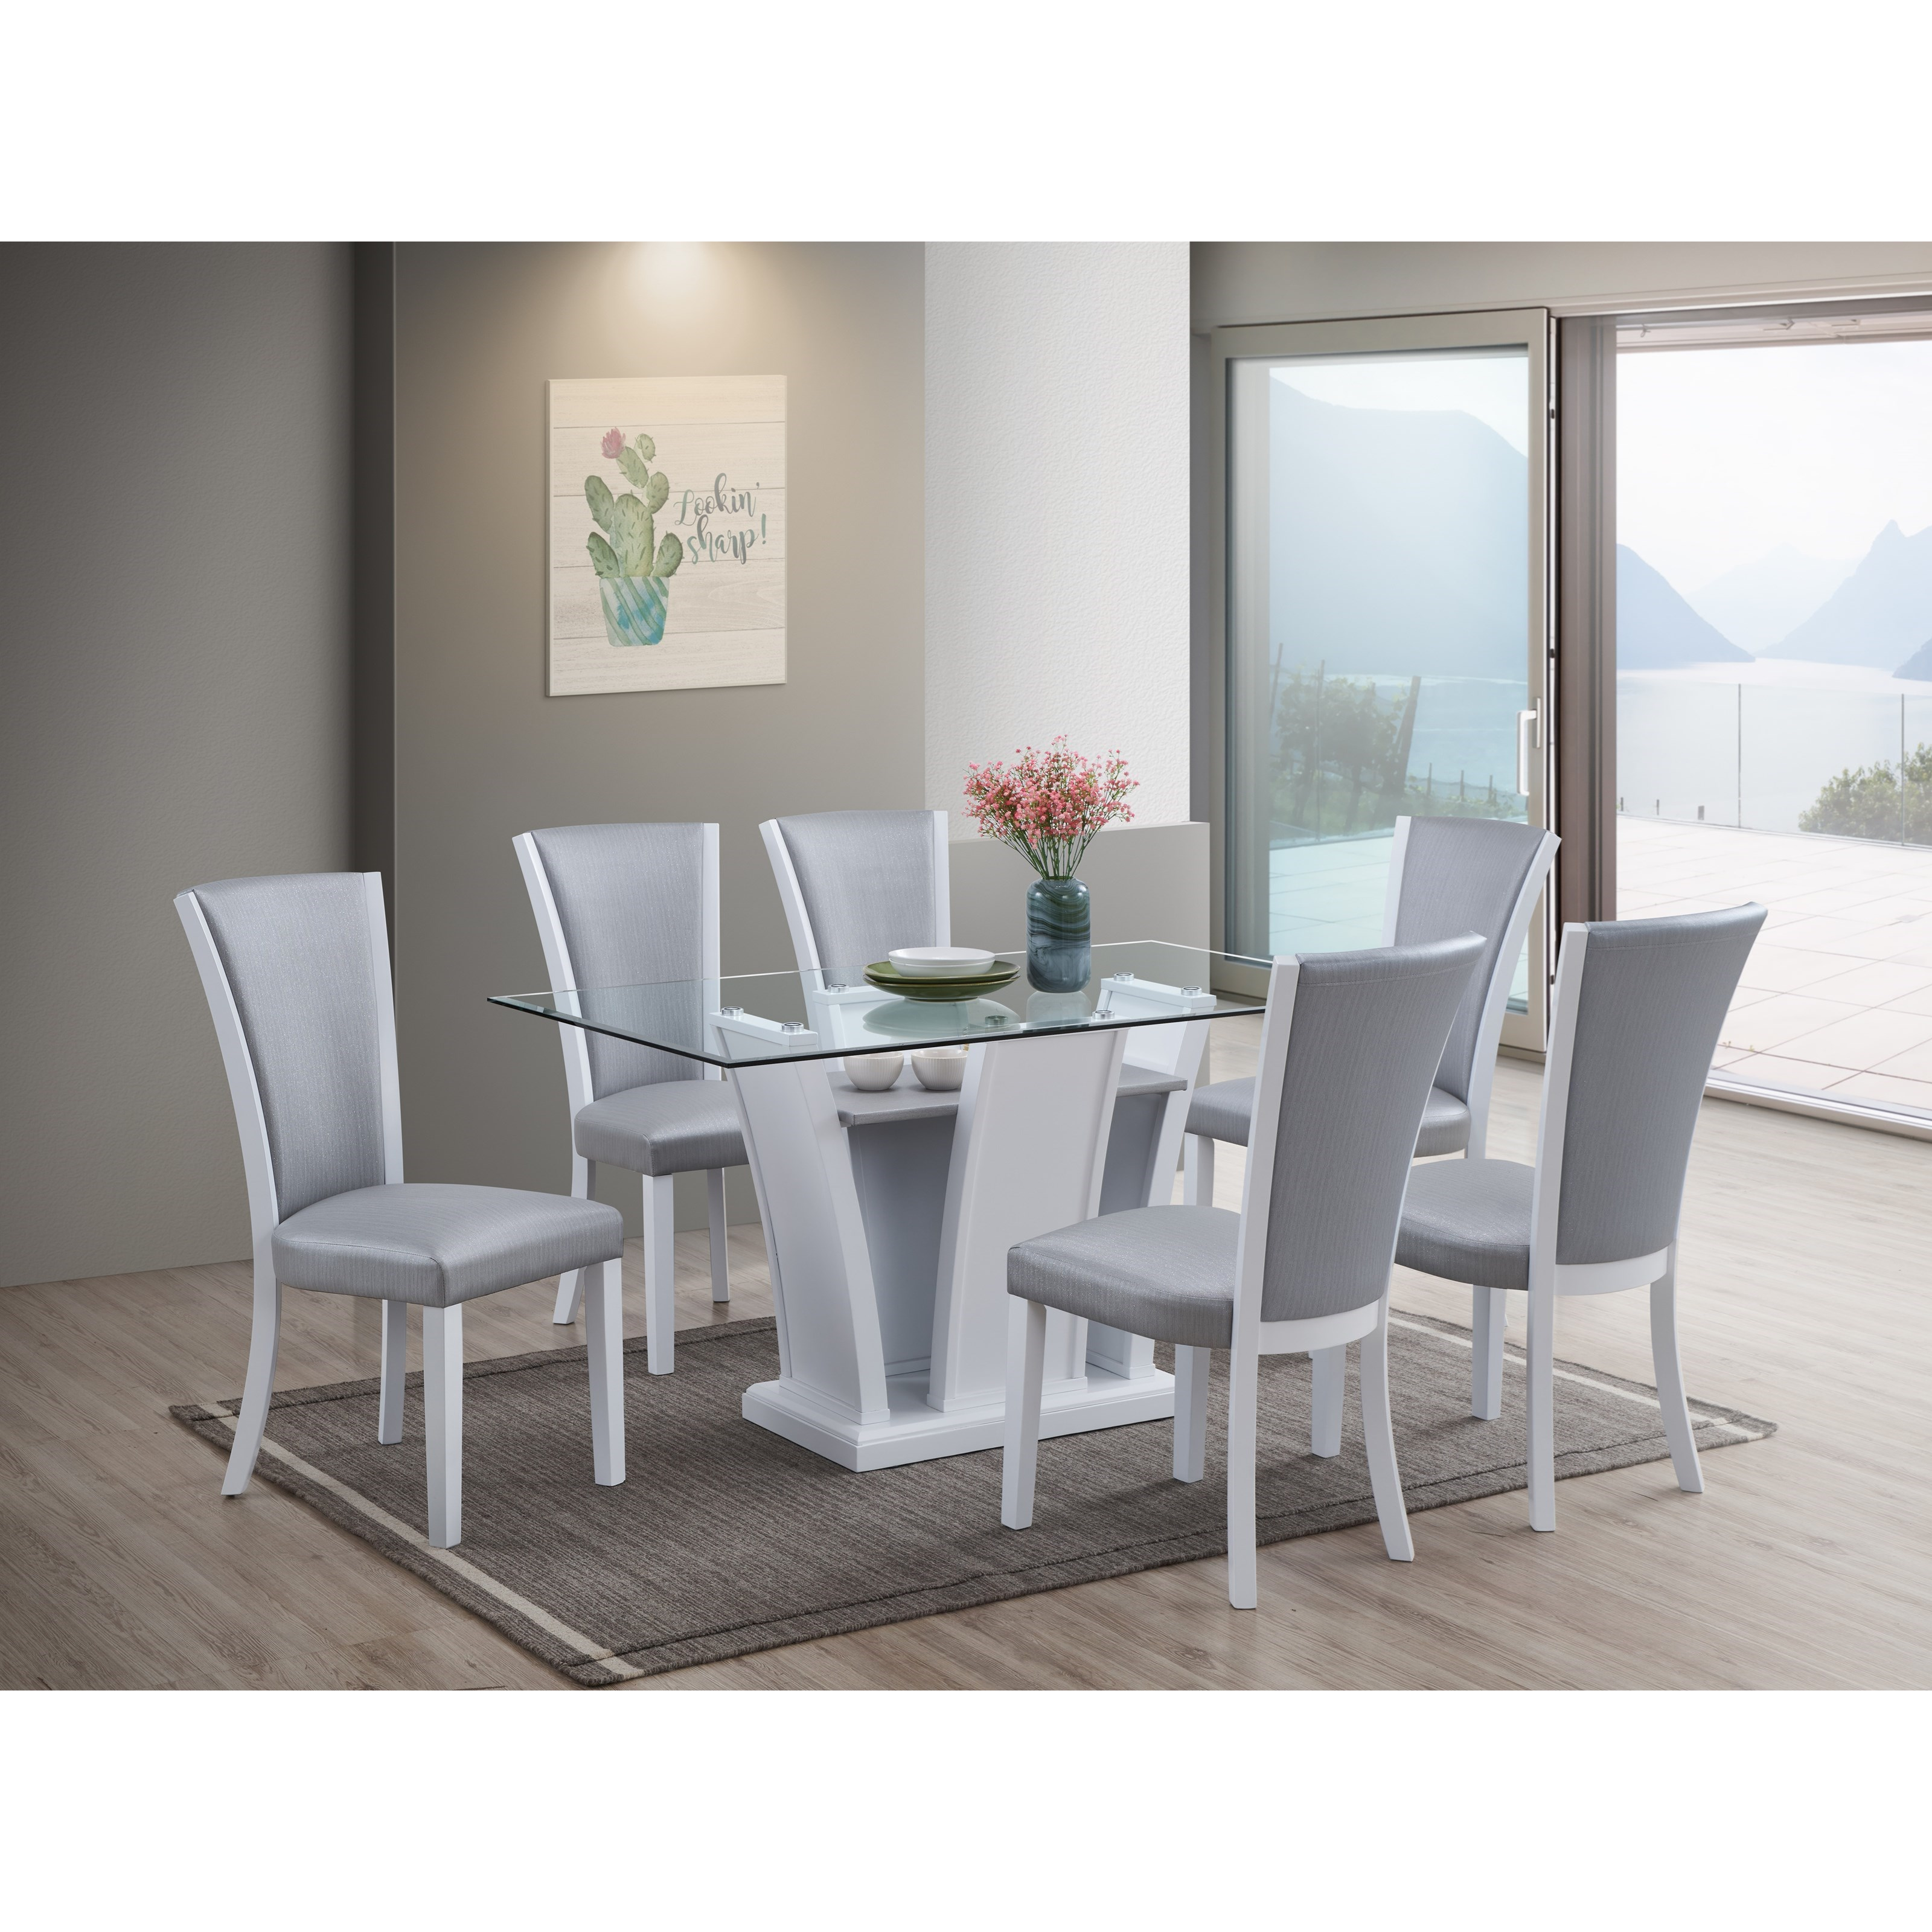 Platina 7-Piece Table and Chair Set by New Classic at H.L. Stephens